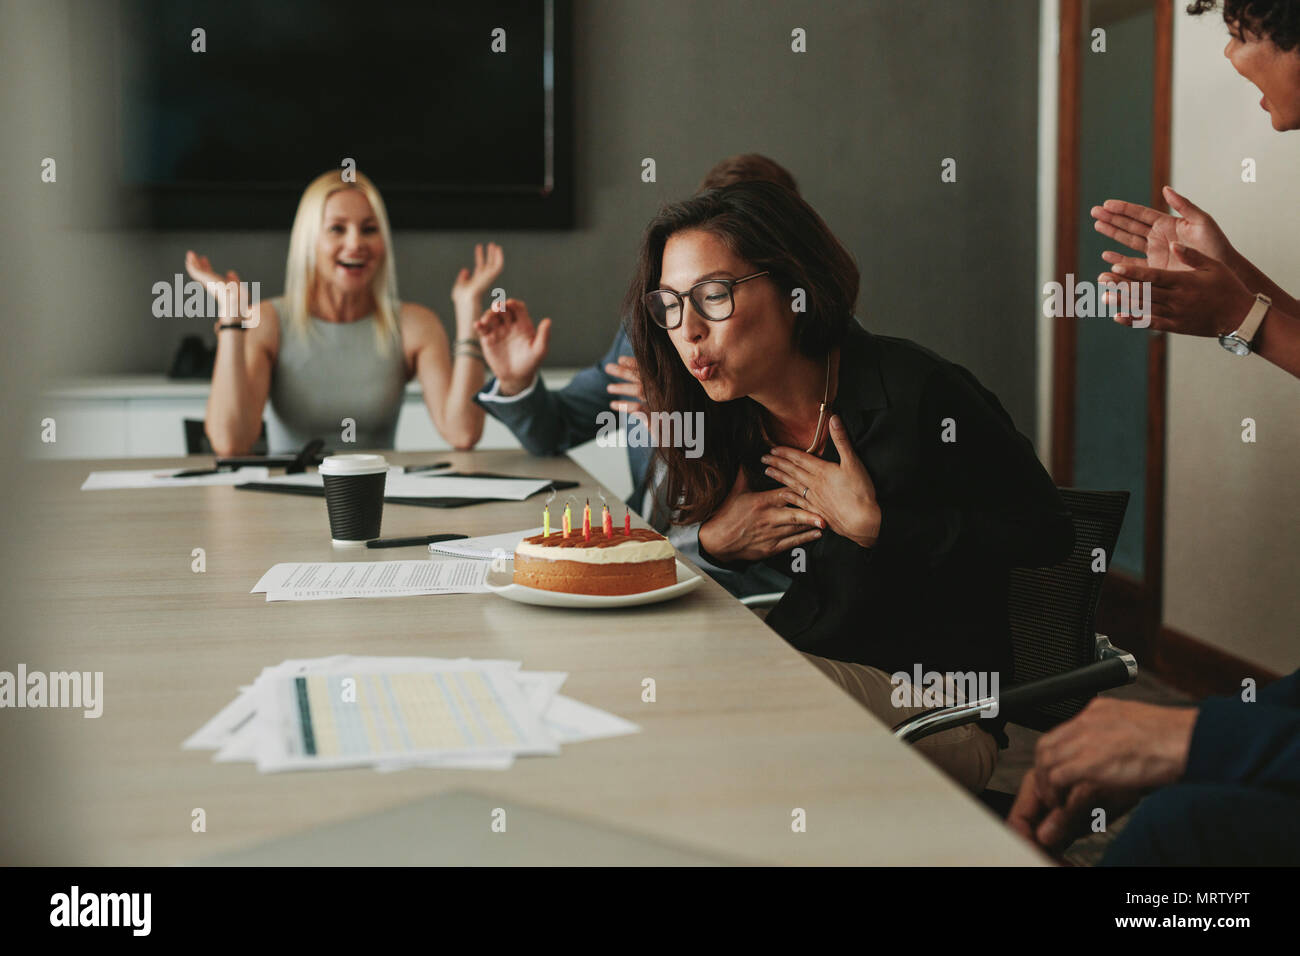 Businesswoman blowing candles on a birthday cake in the office. Asian female associate celebrating her birthday with colleagues in office. - Stock Image